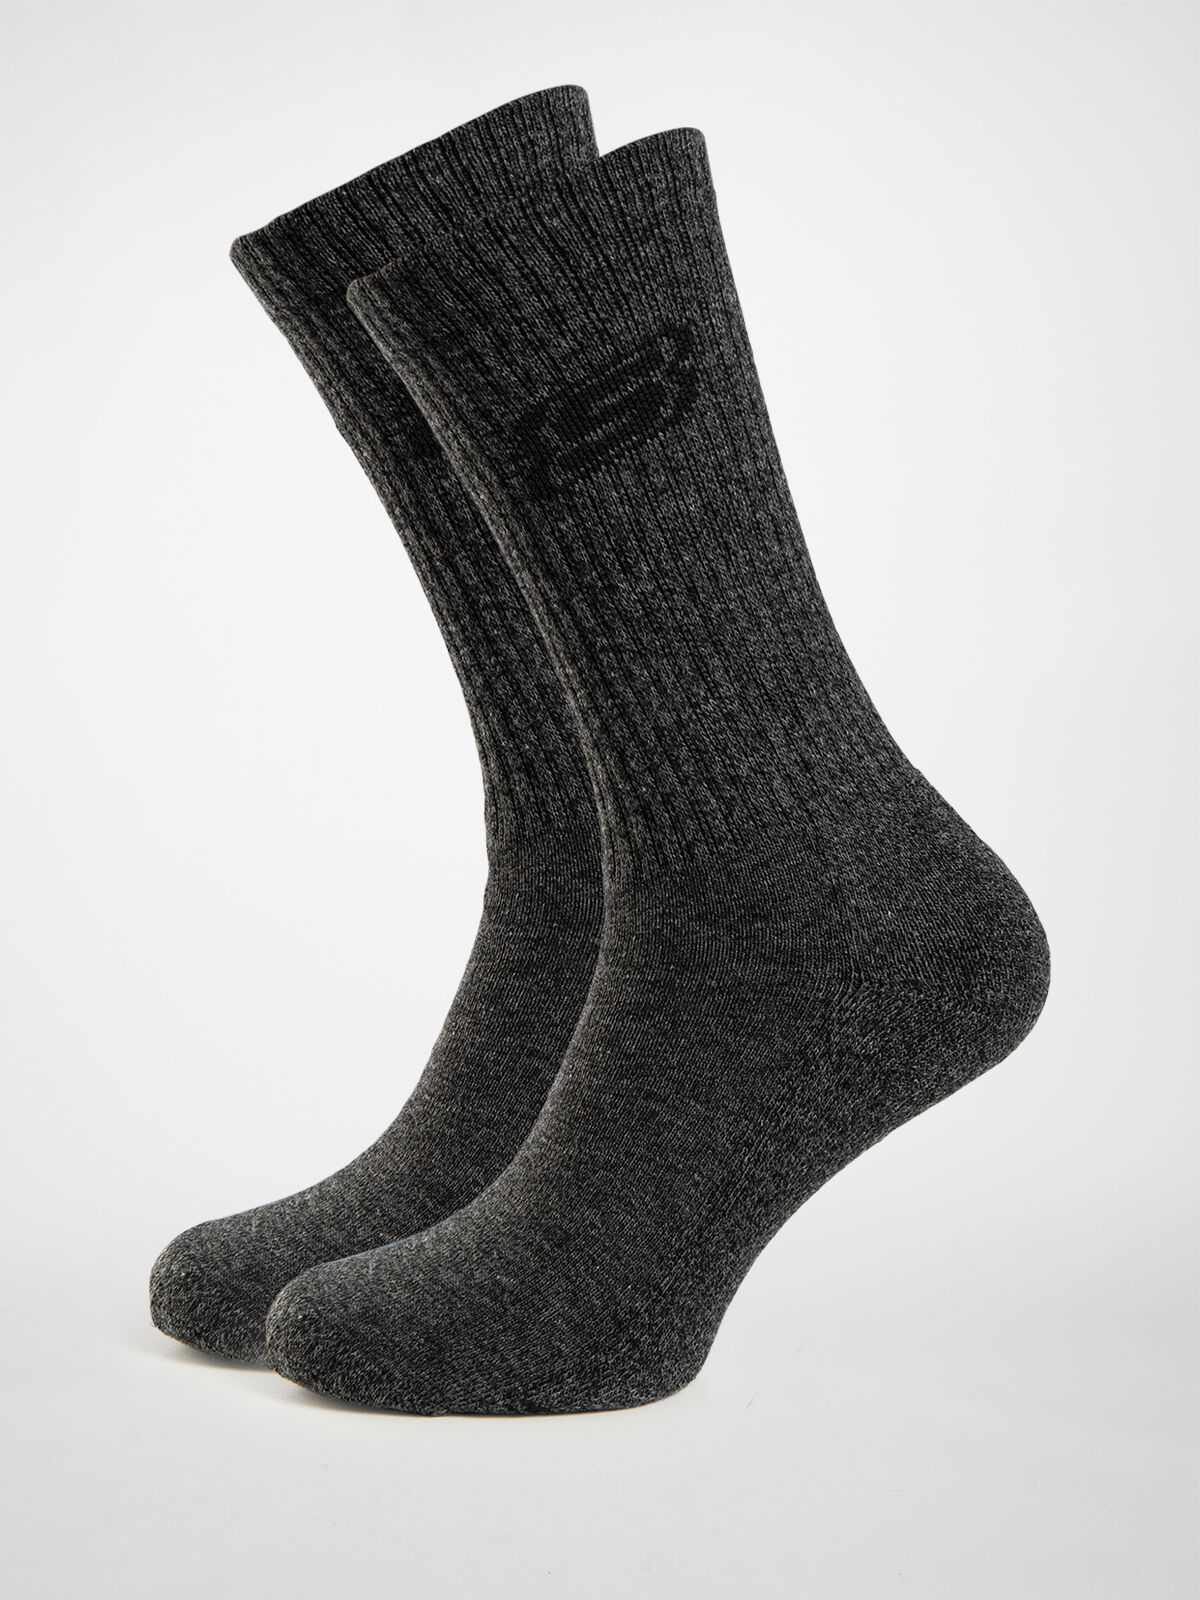 2-Pack of Socks